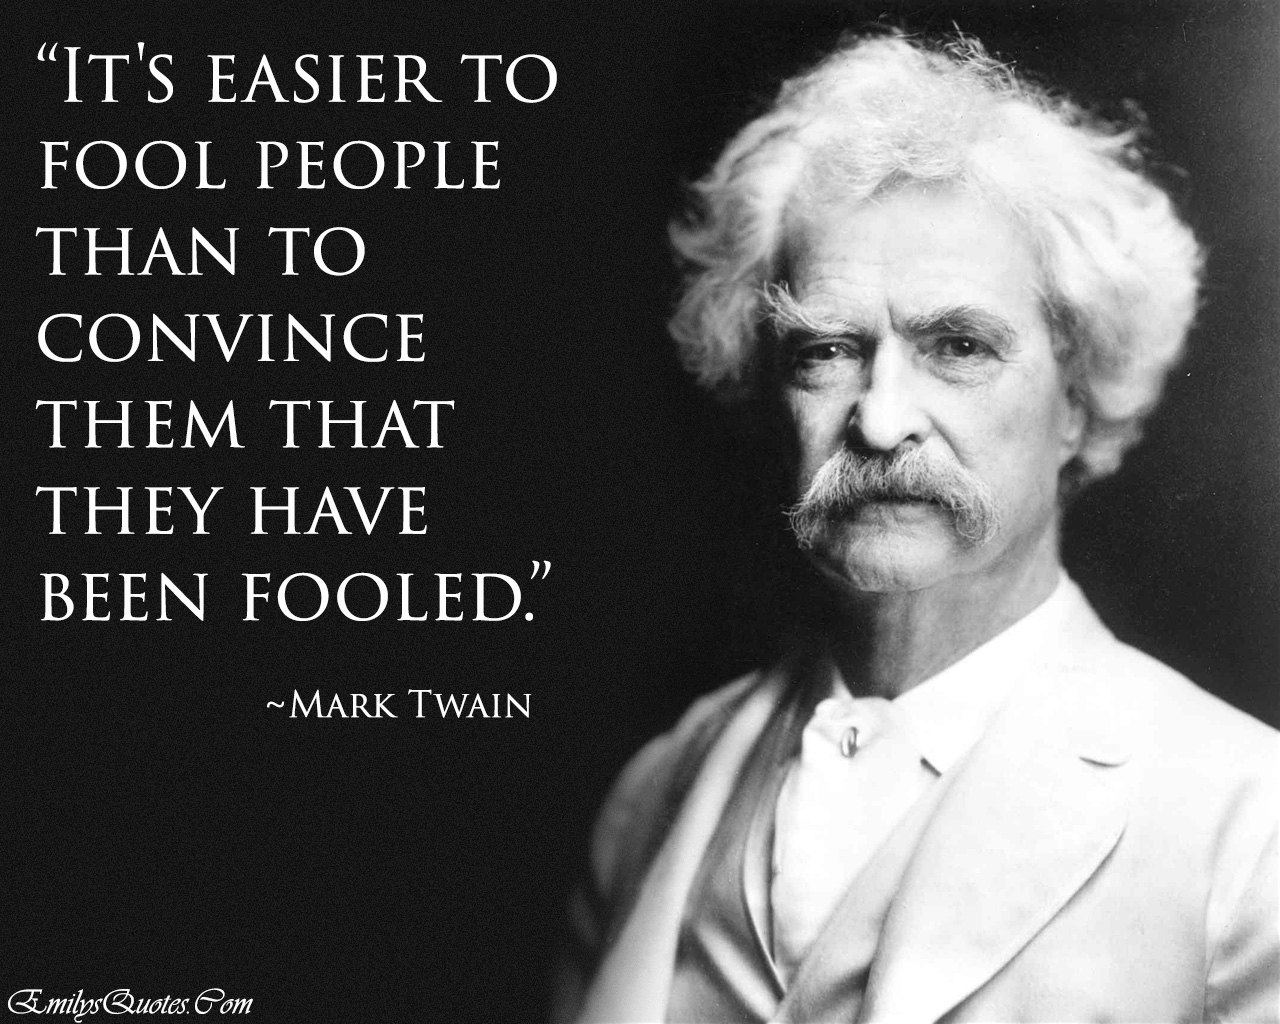 EmilysQuotes.Com - Intelligence, teacher, Mark Twain